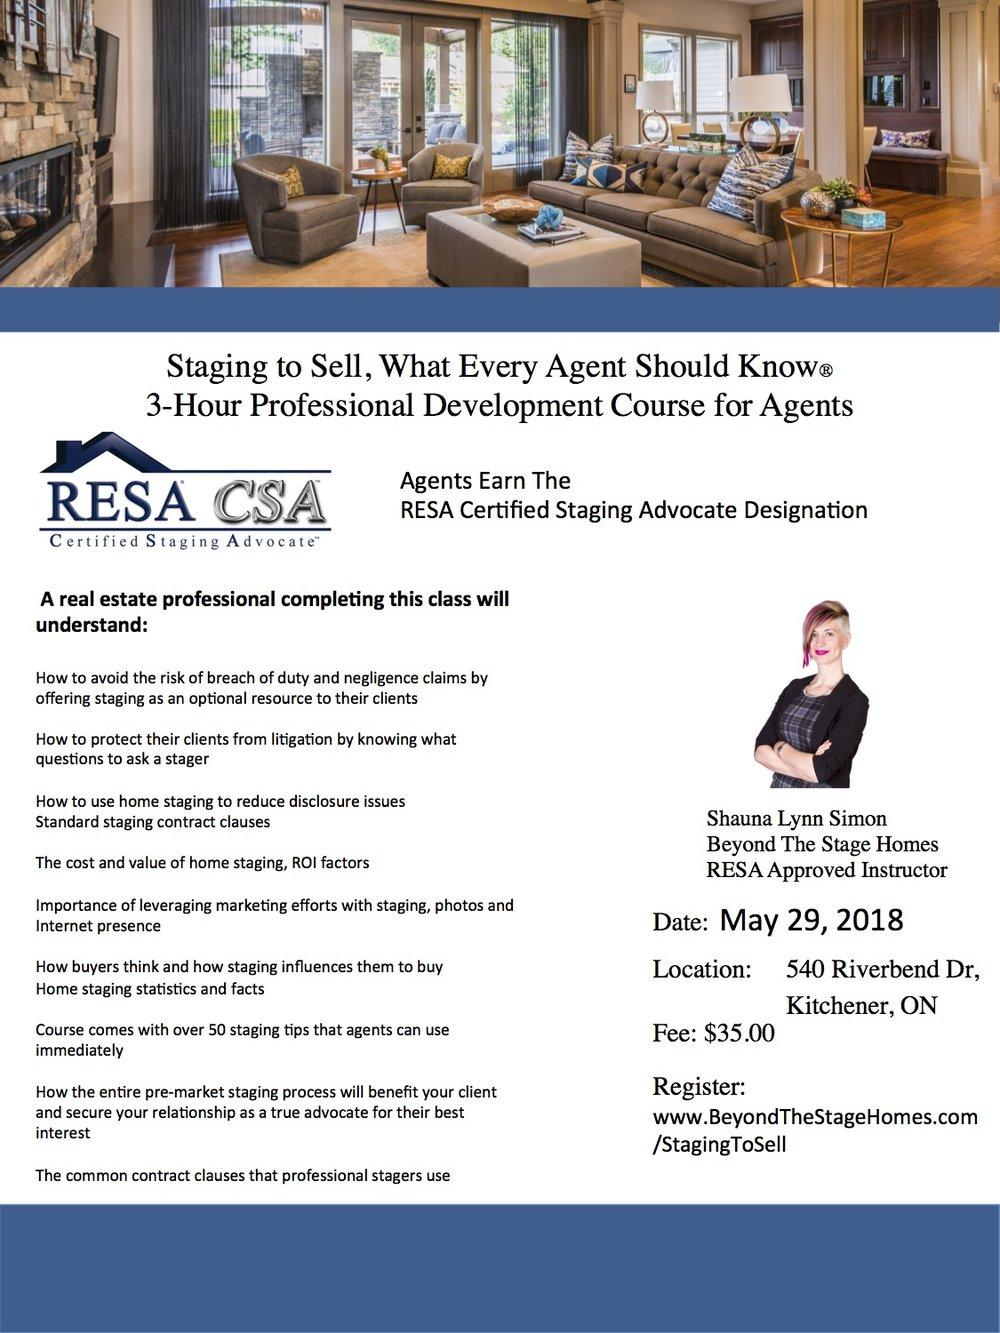 KWAR Staging to Sell - 29May18.jpg